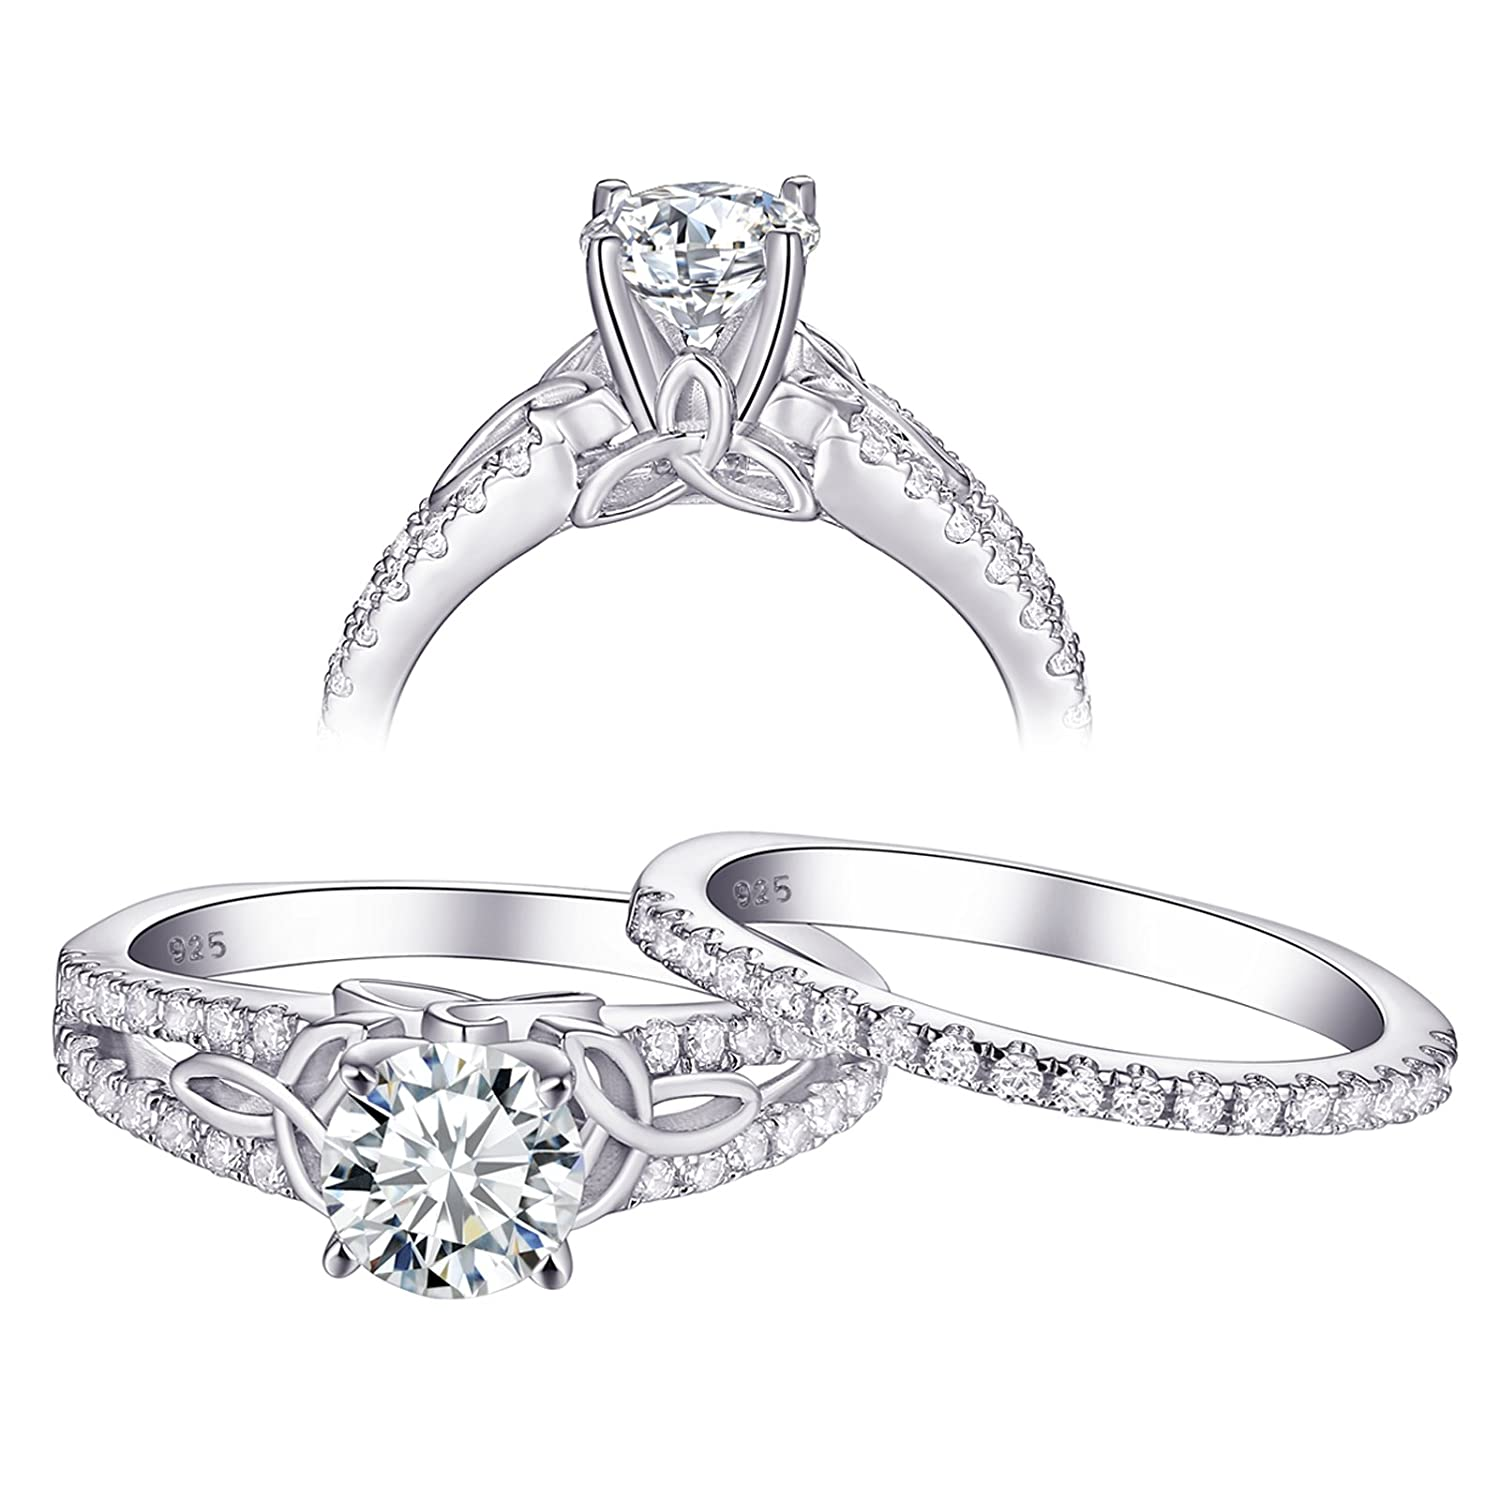 Newshe 1.5ct Round White AAA Cz 925 Sterling Silver Engagement Wedding Ring Set for Woman Newshe Jewellery JR4230_SS